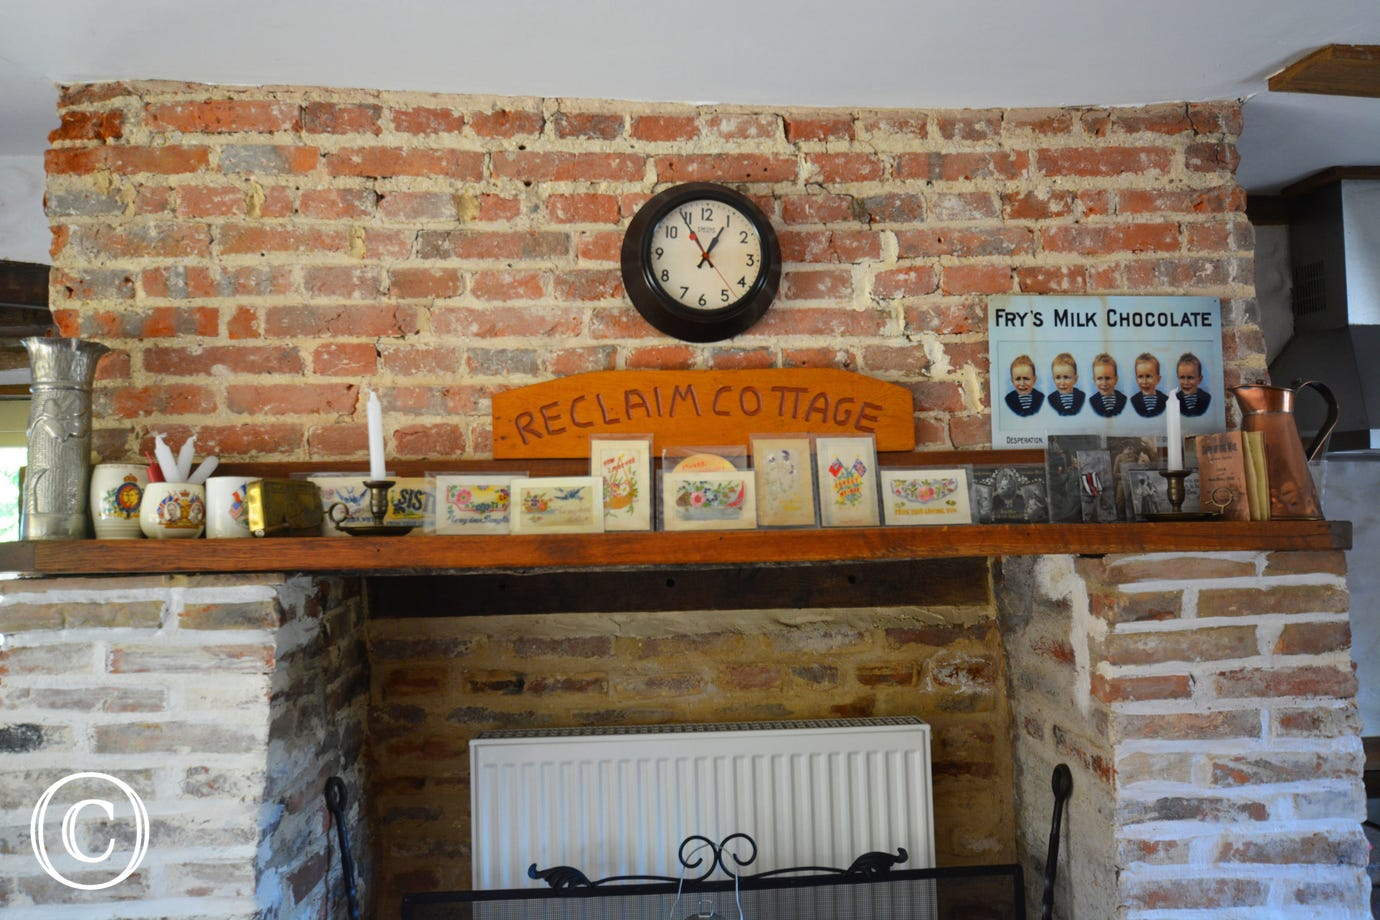 Mantelpiece in the kitchen